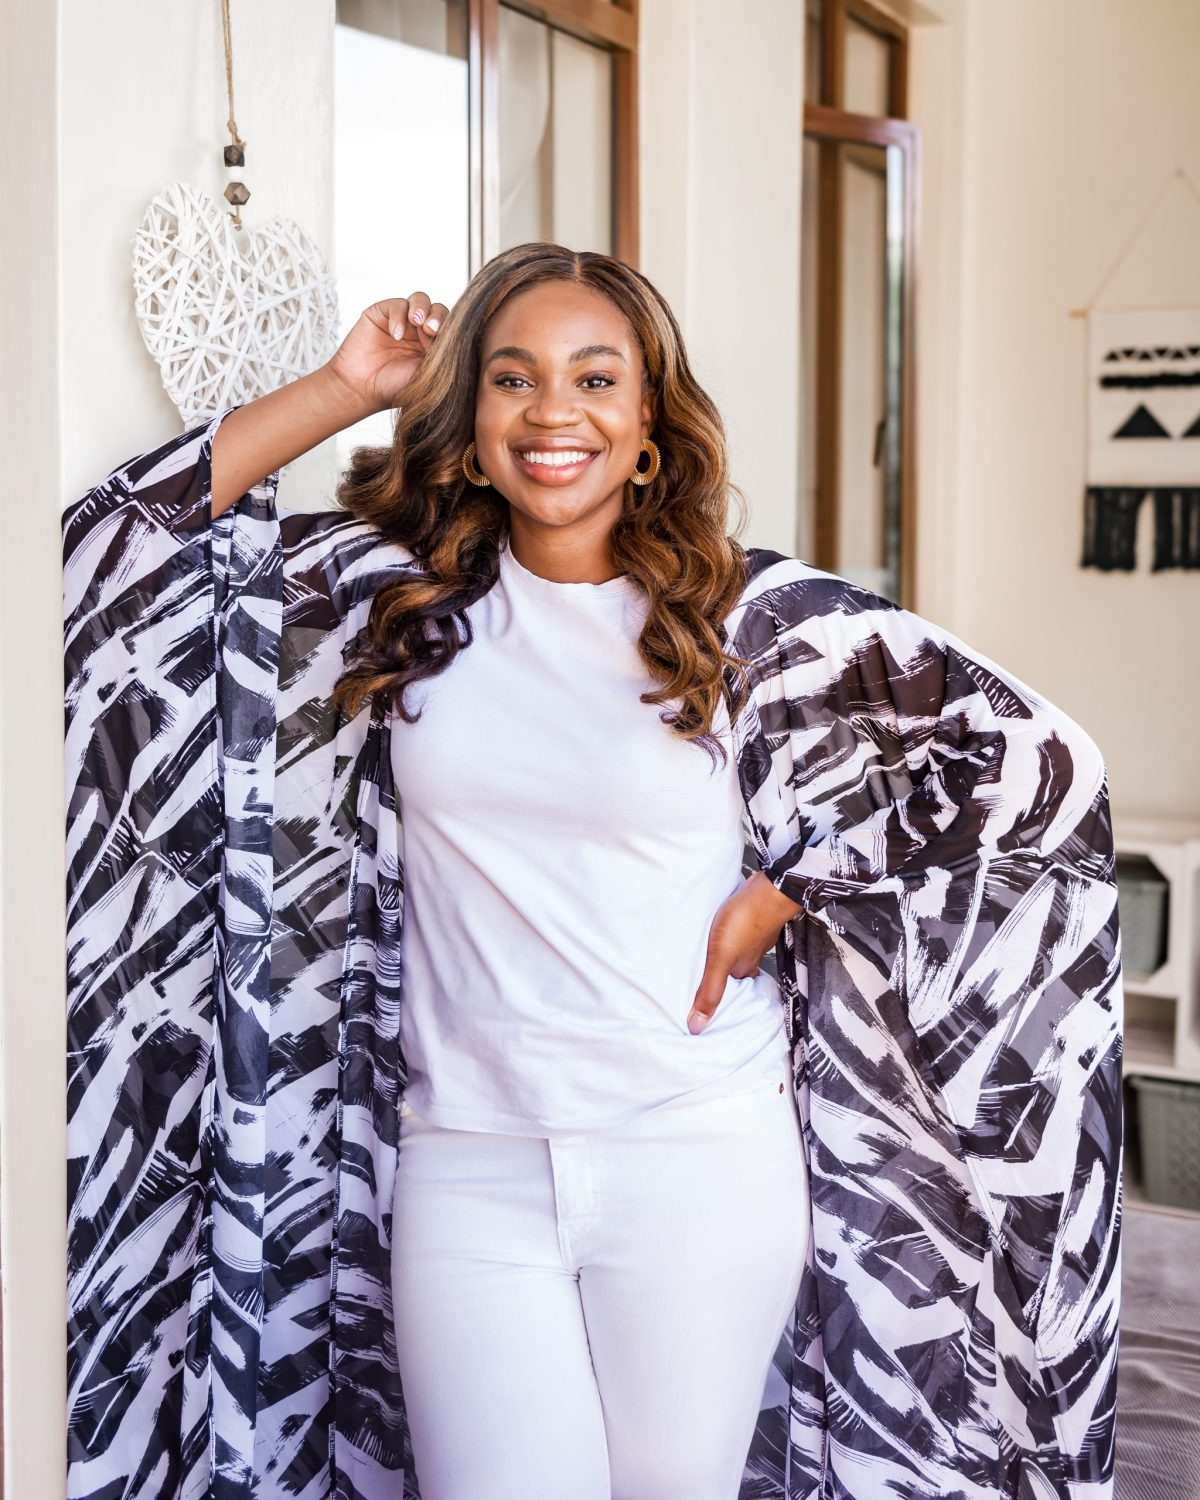 Ijeoma Kola in white outfit with black and white kimono